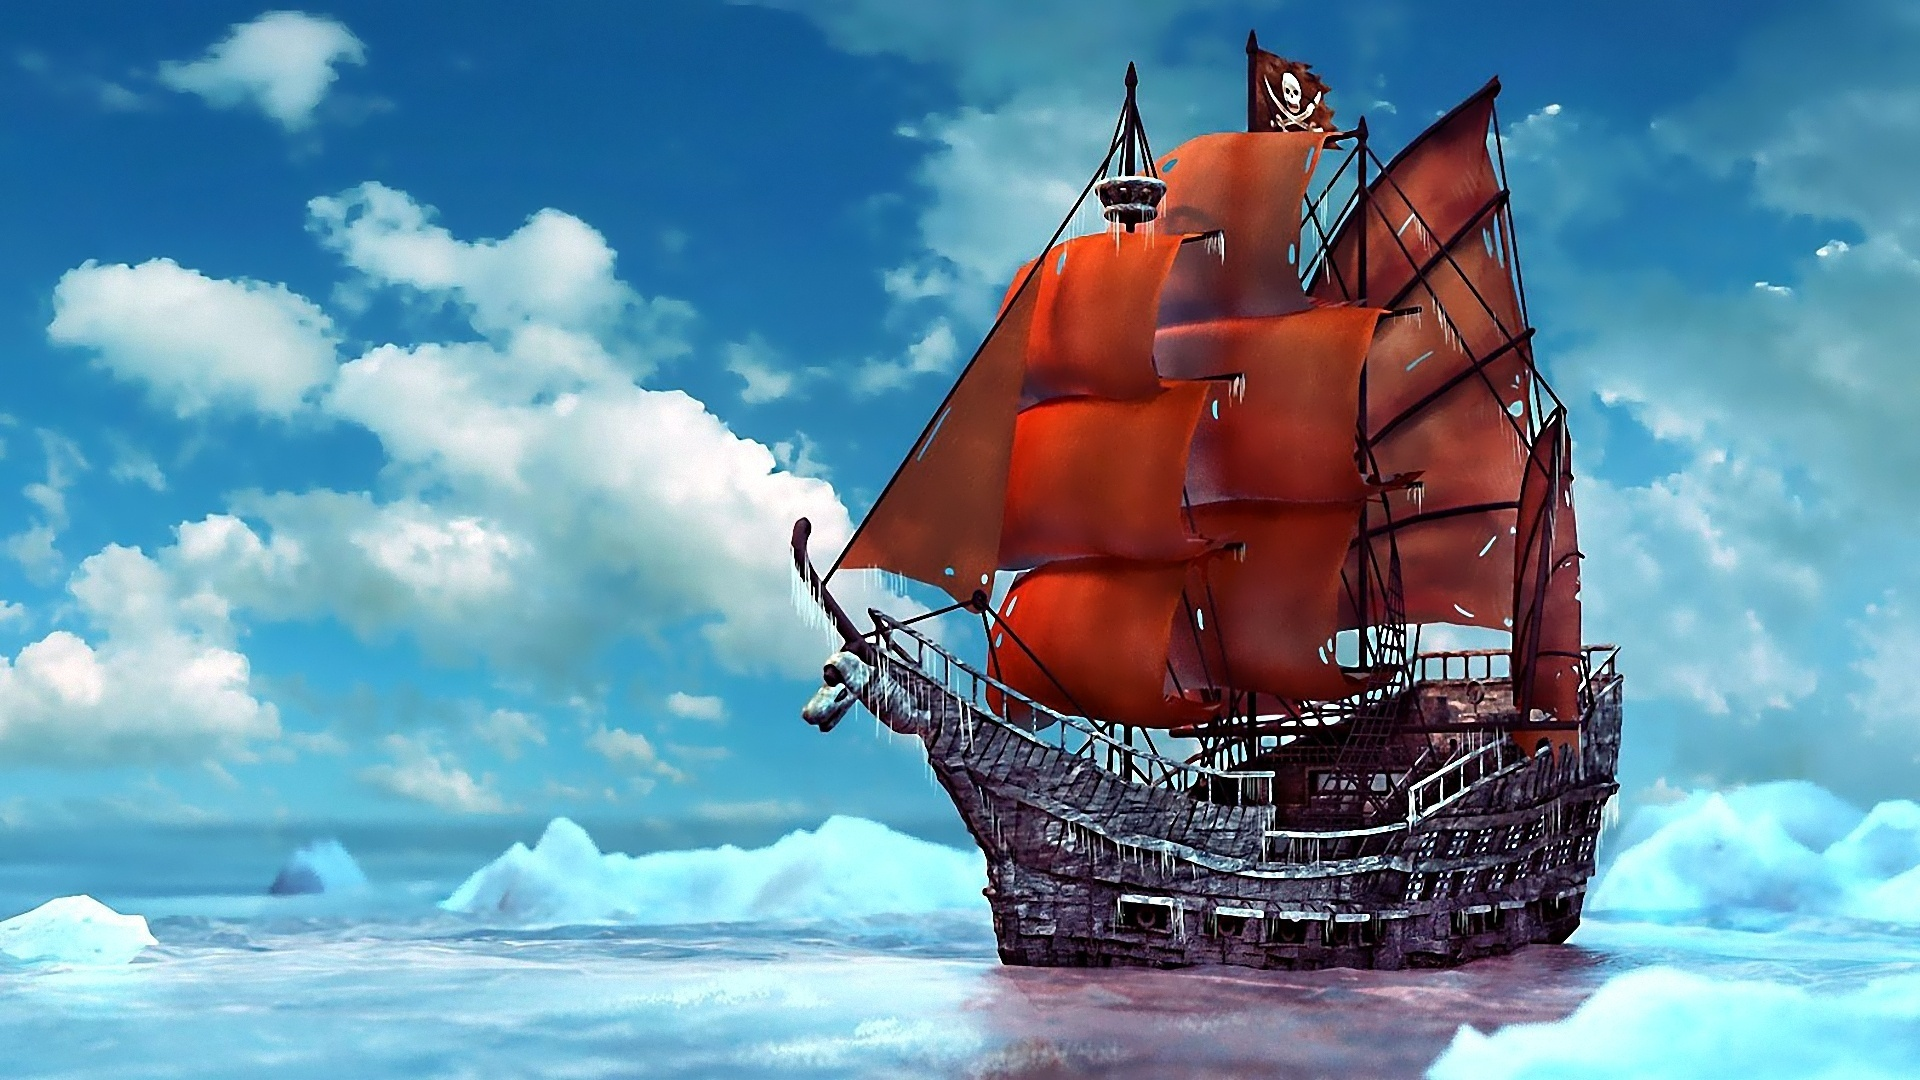 Ships Wallpapers Best Wallpapers 1920x1080